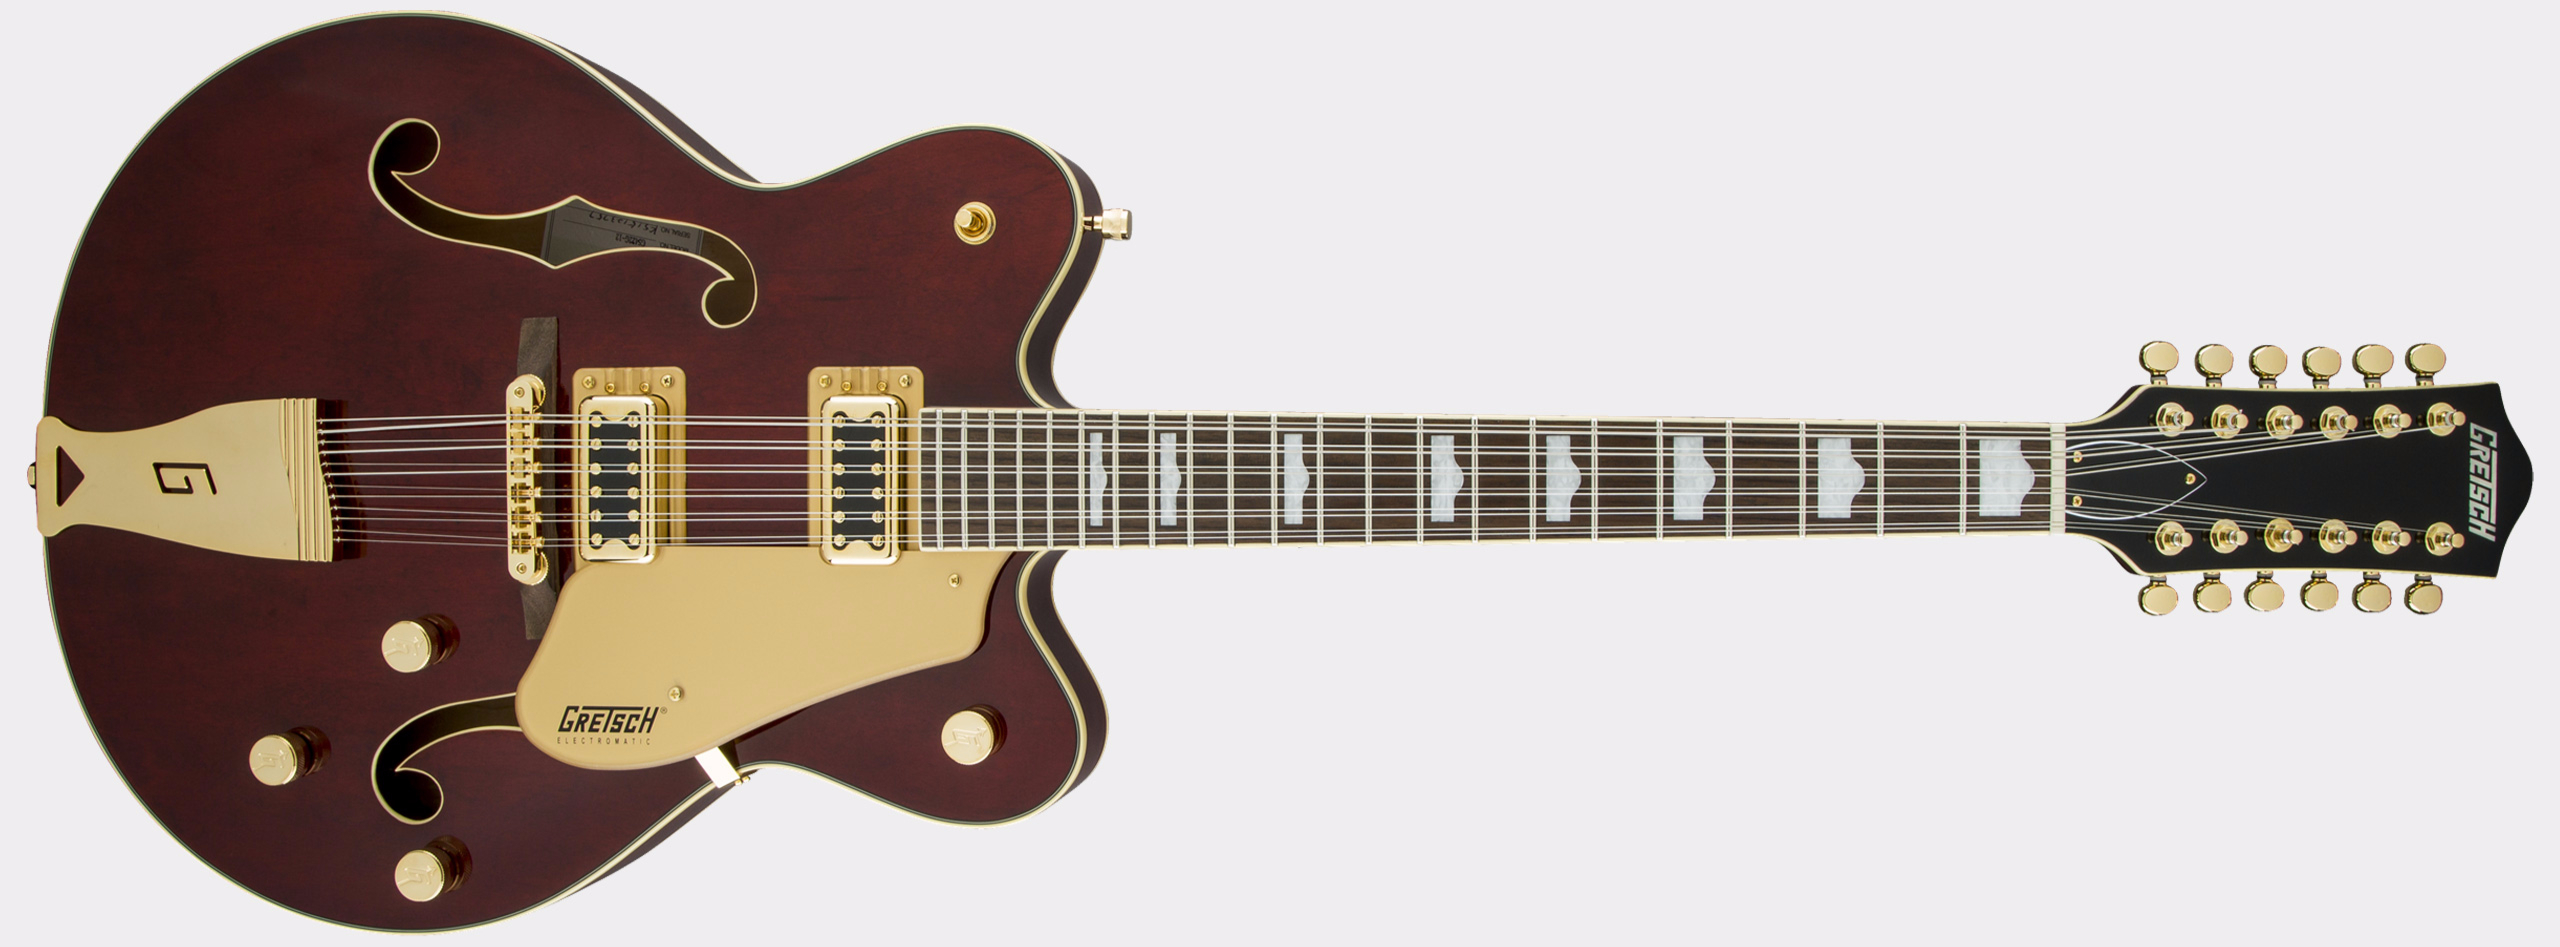 GRETSCH G5422G-12 Electromatic Hollow Body Double-Cut 12-String Walnut Stain